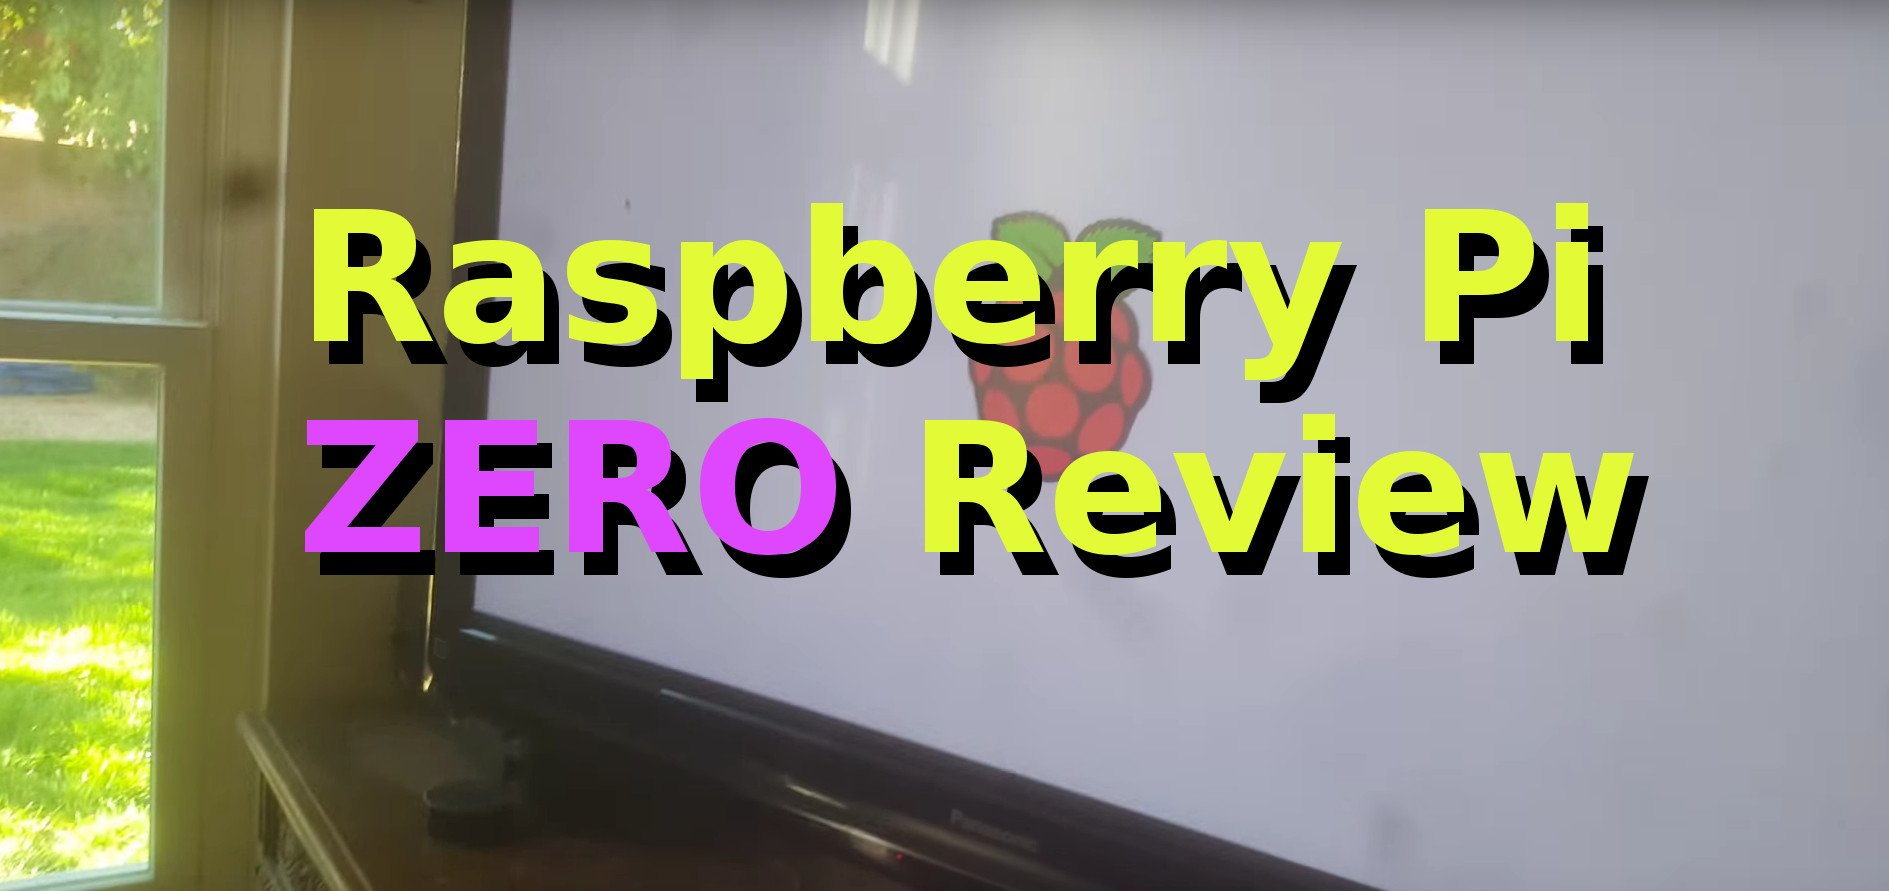 Raspberry Pi Zero Review VIDEO + Top 5 Uses